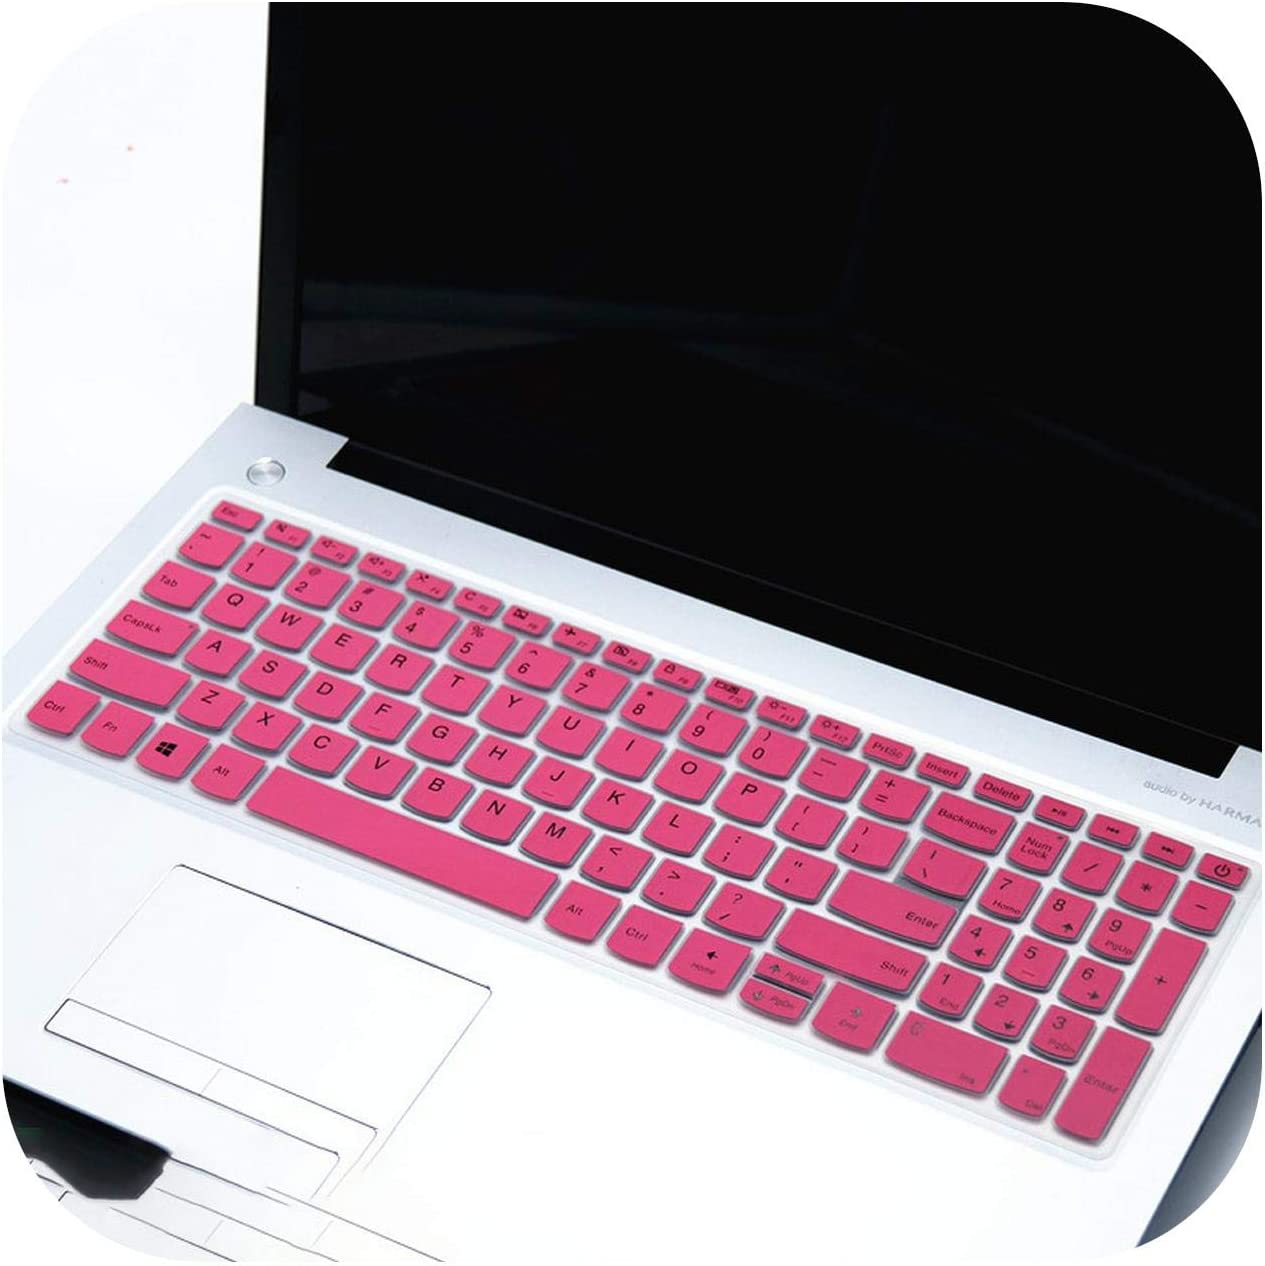 15 Intel 15 AMD Laptop Keyboard Cover Skin for Lenovo IdeaPad S145 15 15.6 inch S145 15IWL s145 15ast s145 15 2019-clear